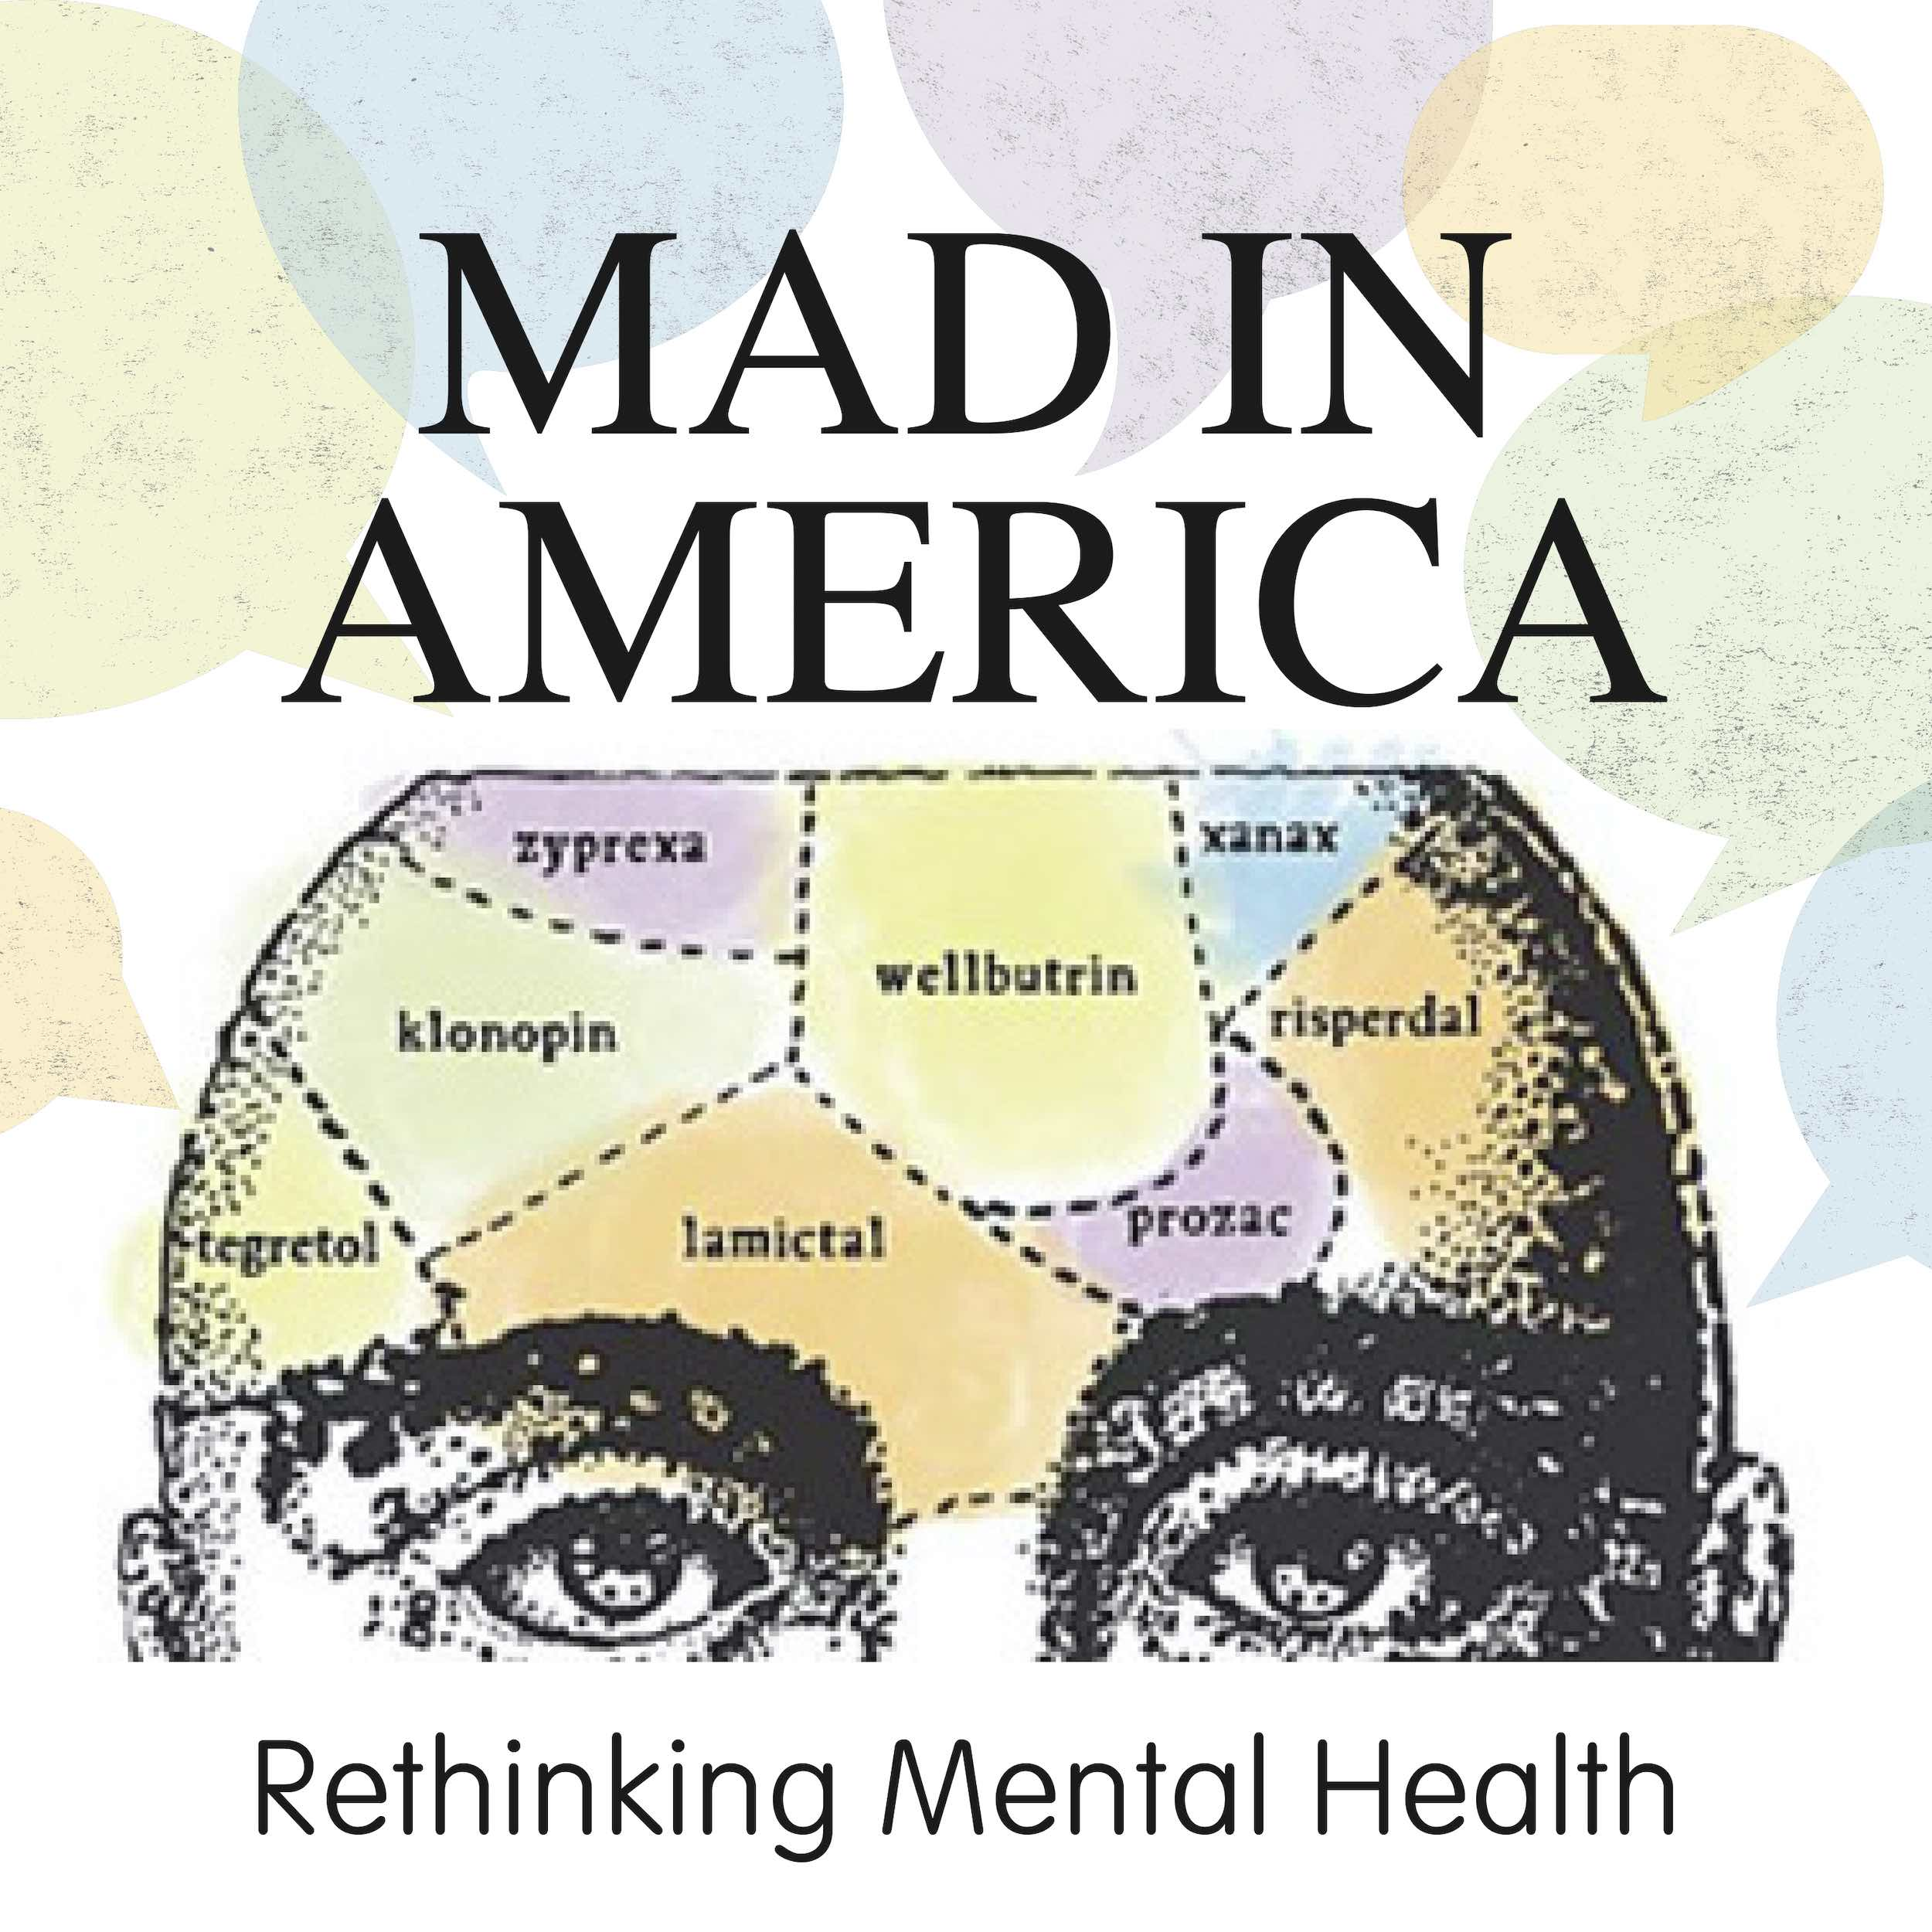 Mad in America: Rethinking Mental Health - Natalie Campo - Can We Move Toward Mindful Medicine?